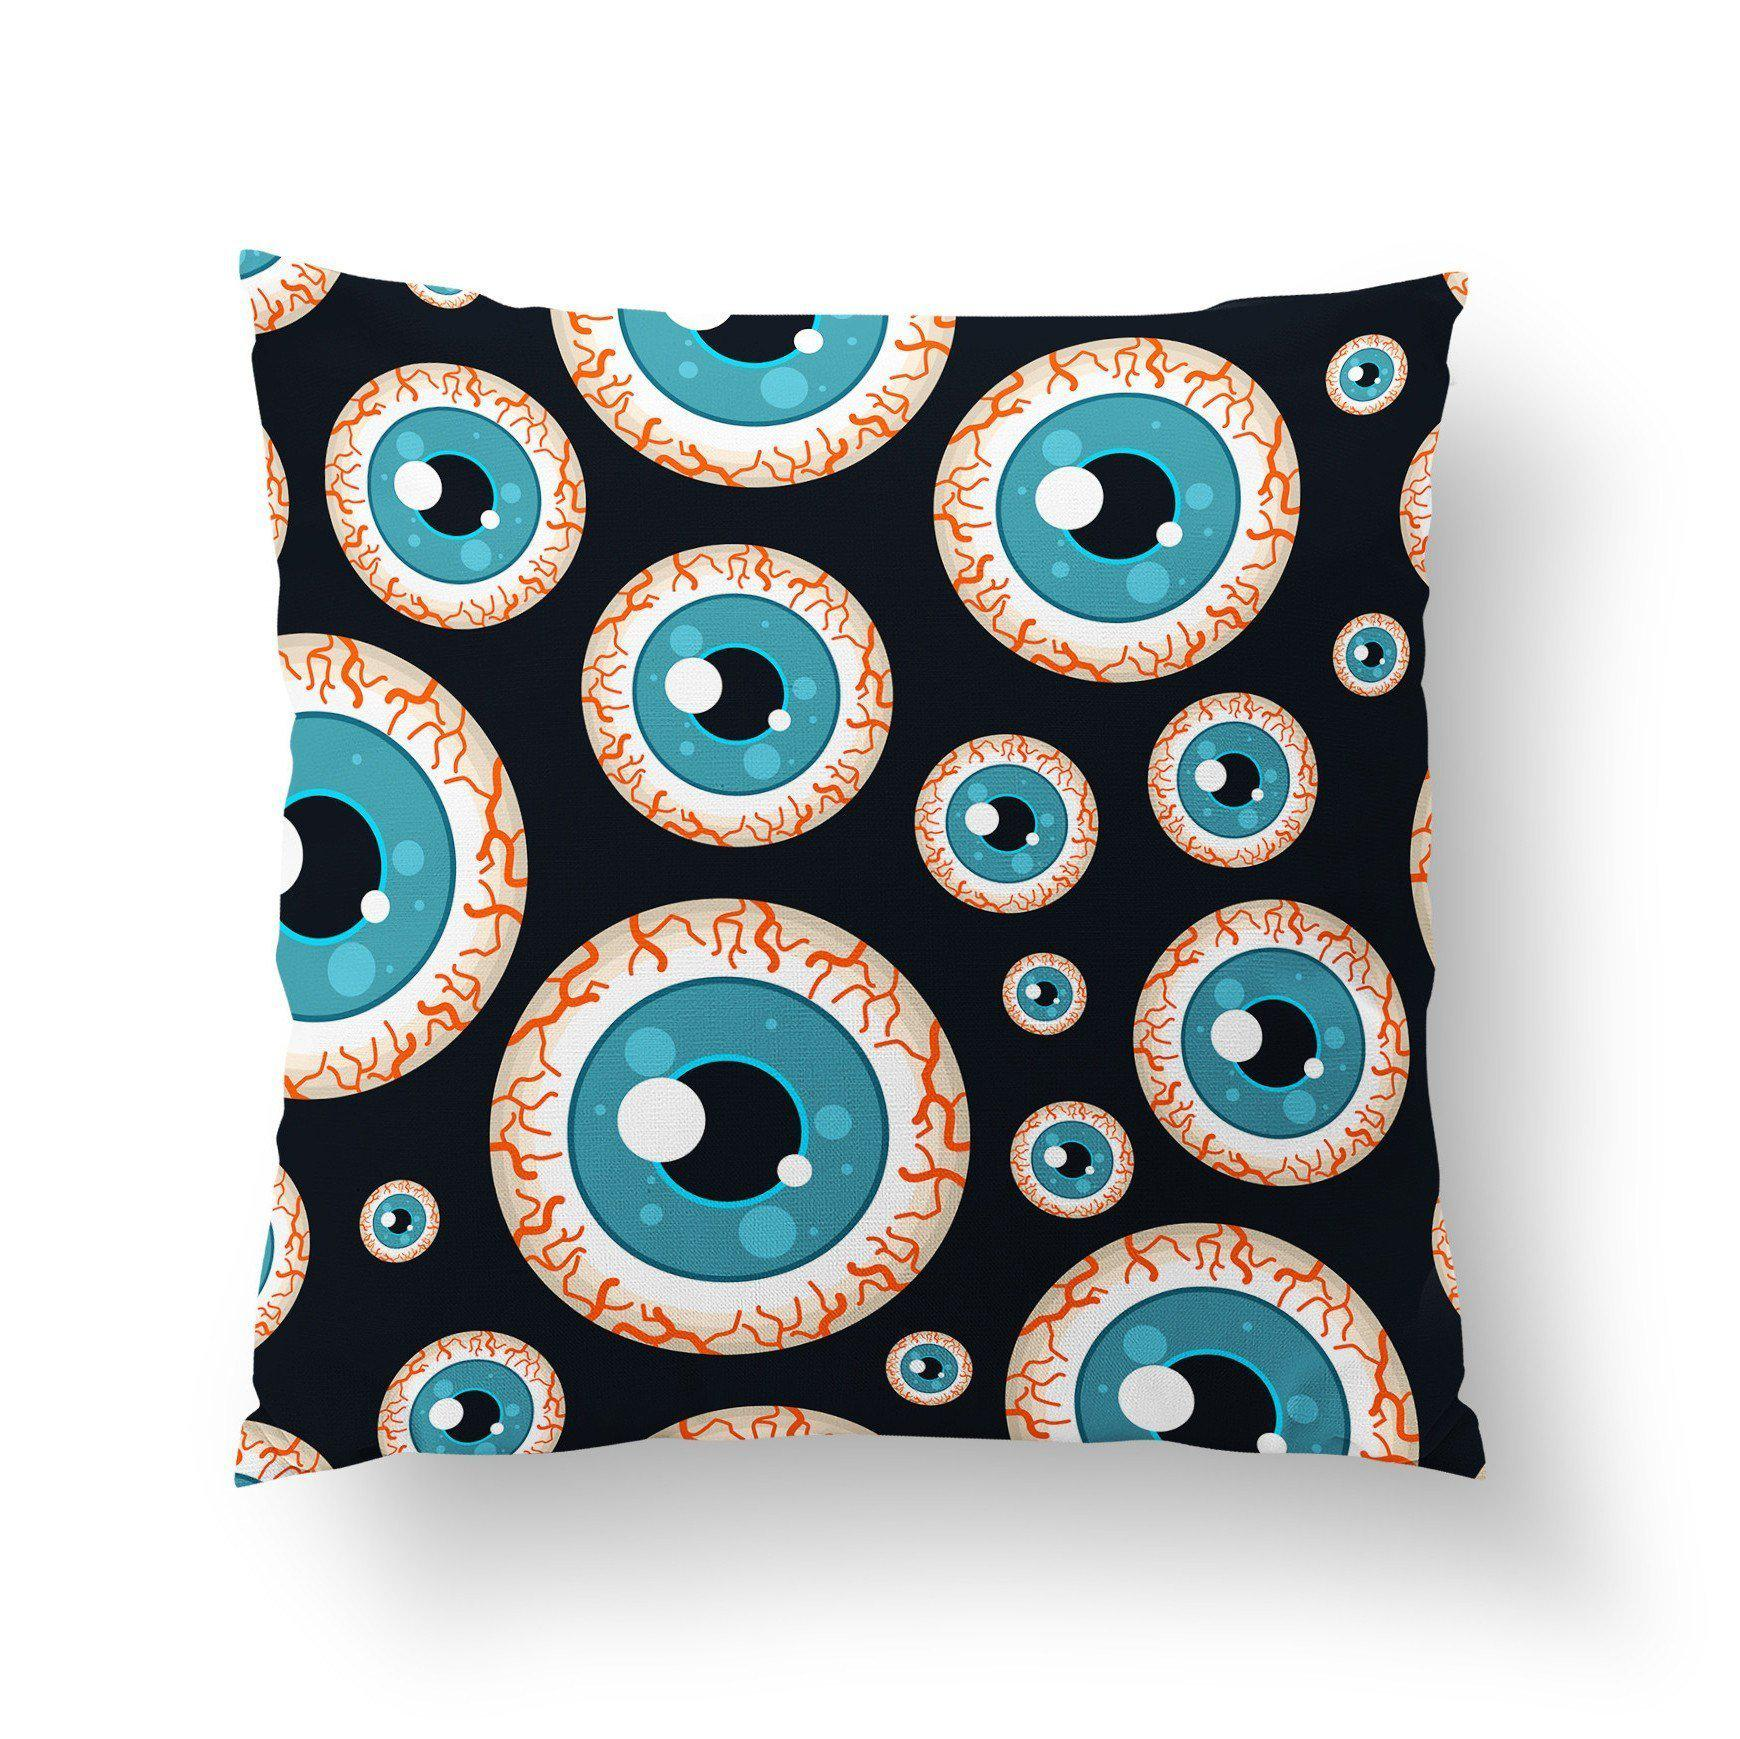 Eyeball Pillow - Pillow Covers - W.FRANCIS